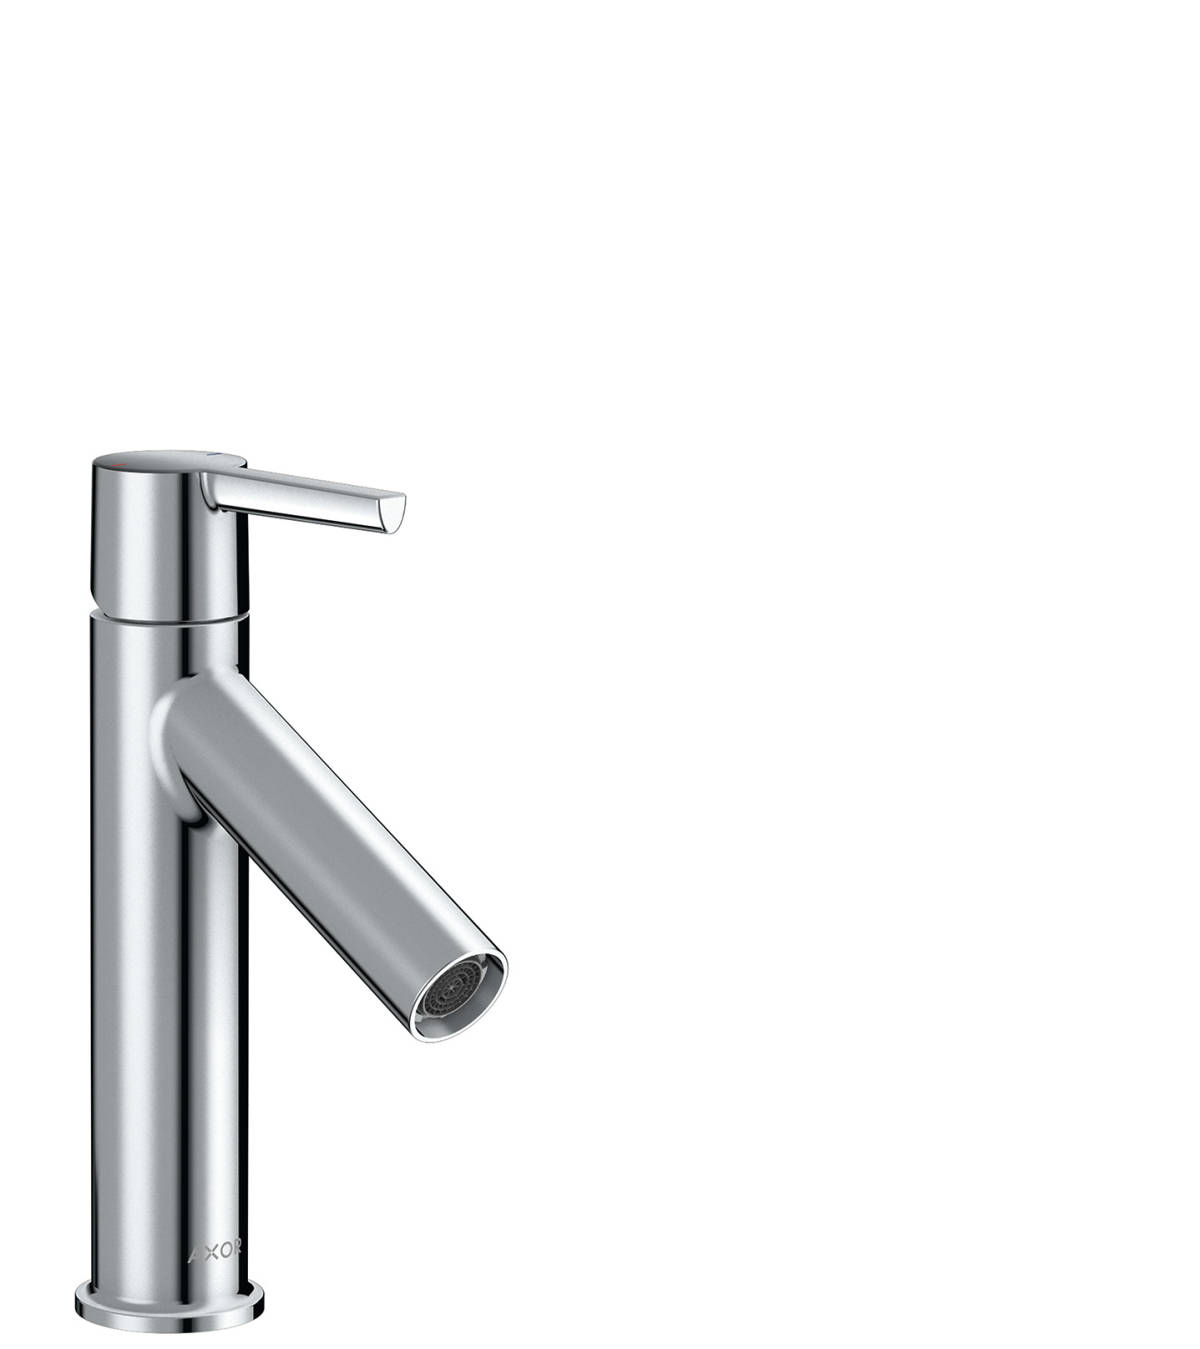 Single lever basin mixer 100 with lever handle and waste set, Polished Chrome, 10003020